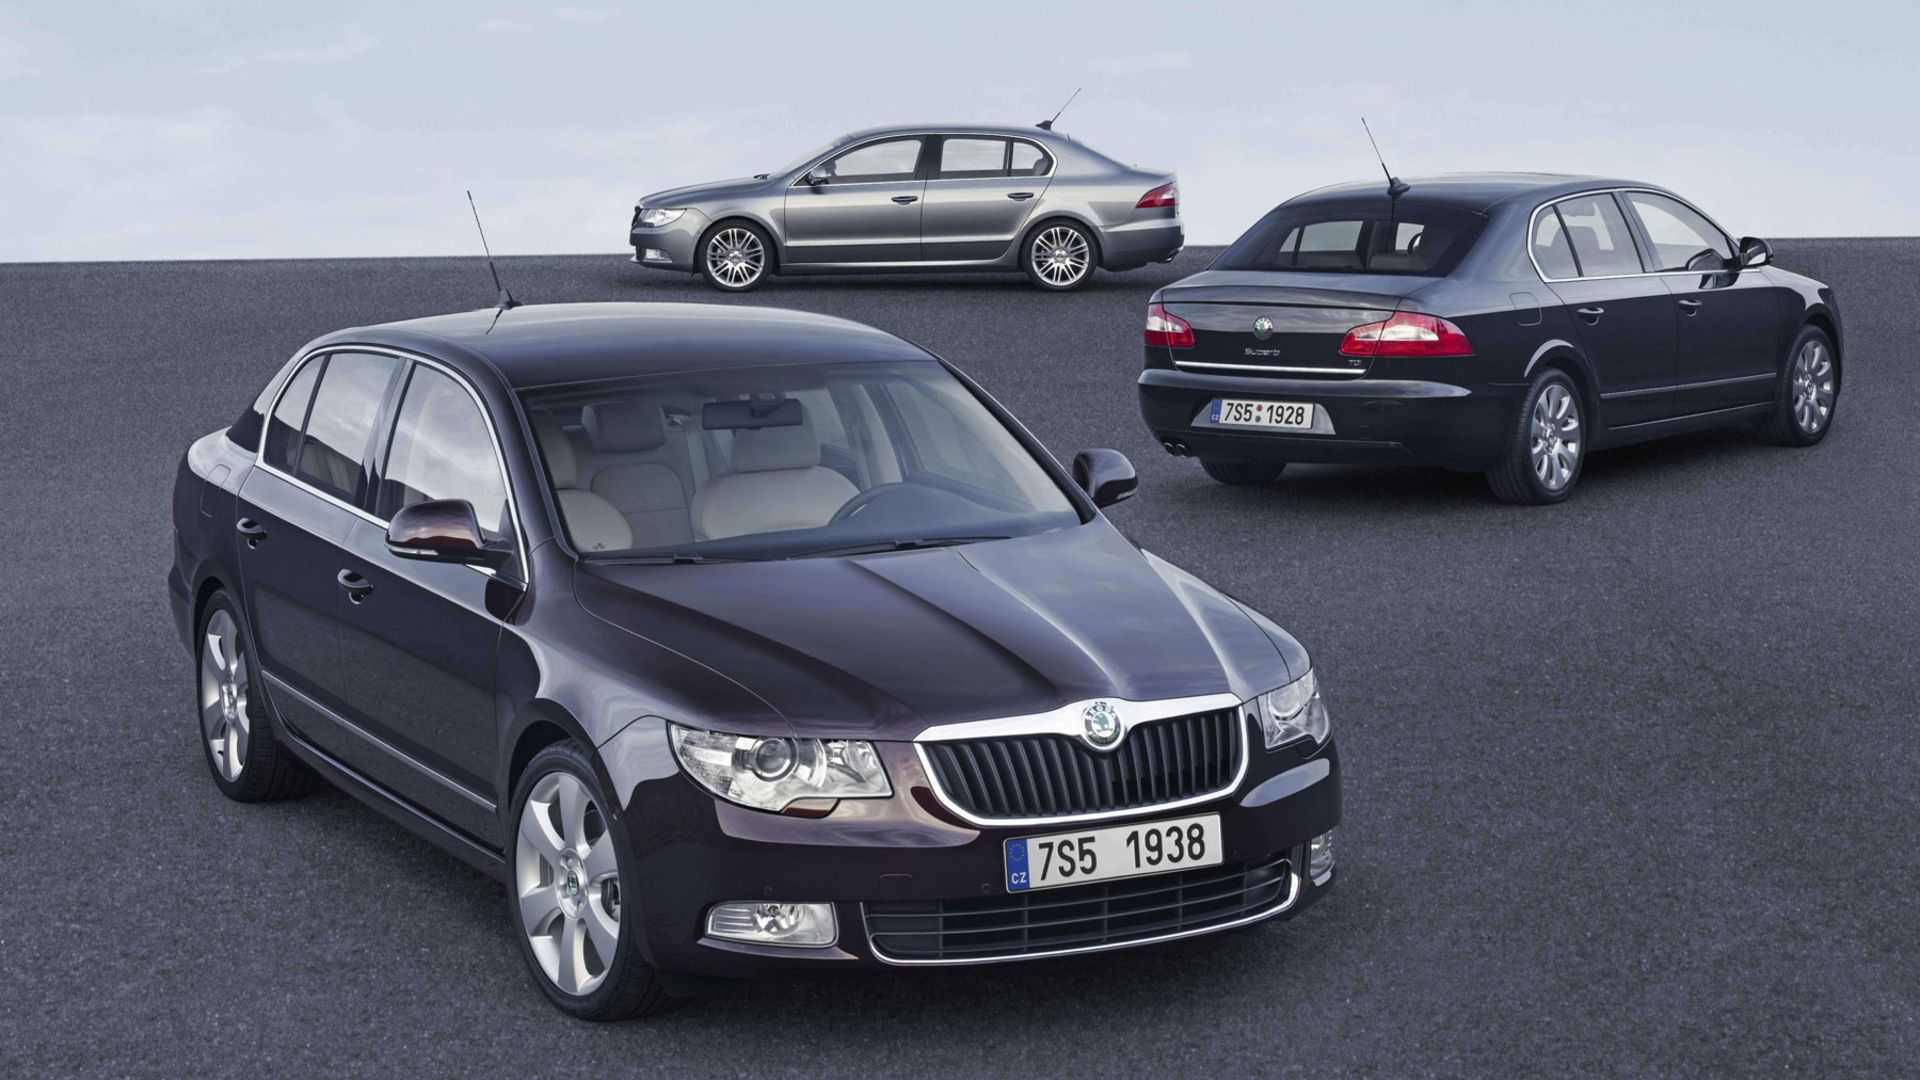 Used luxury cars for less